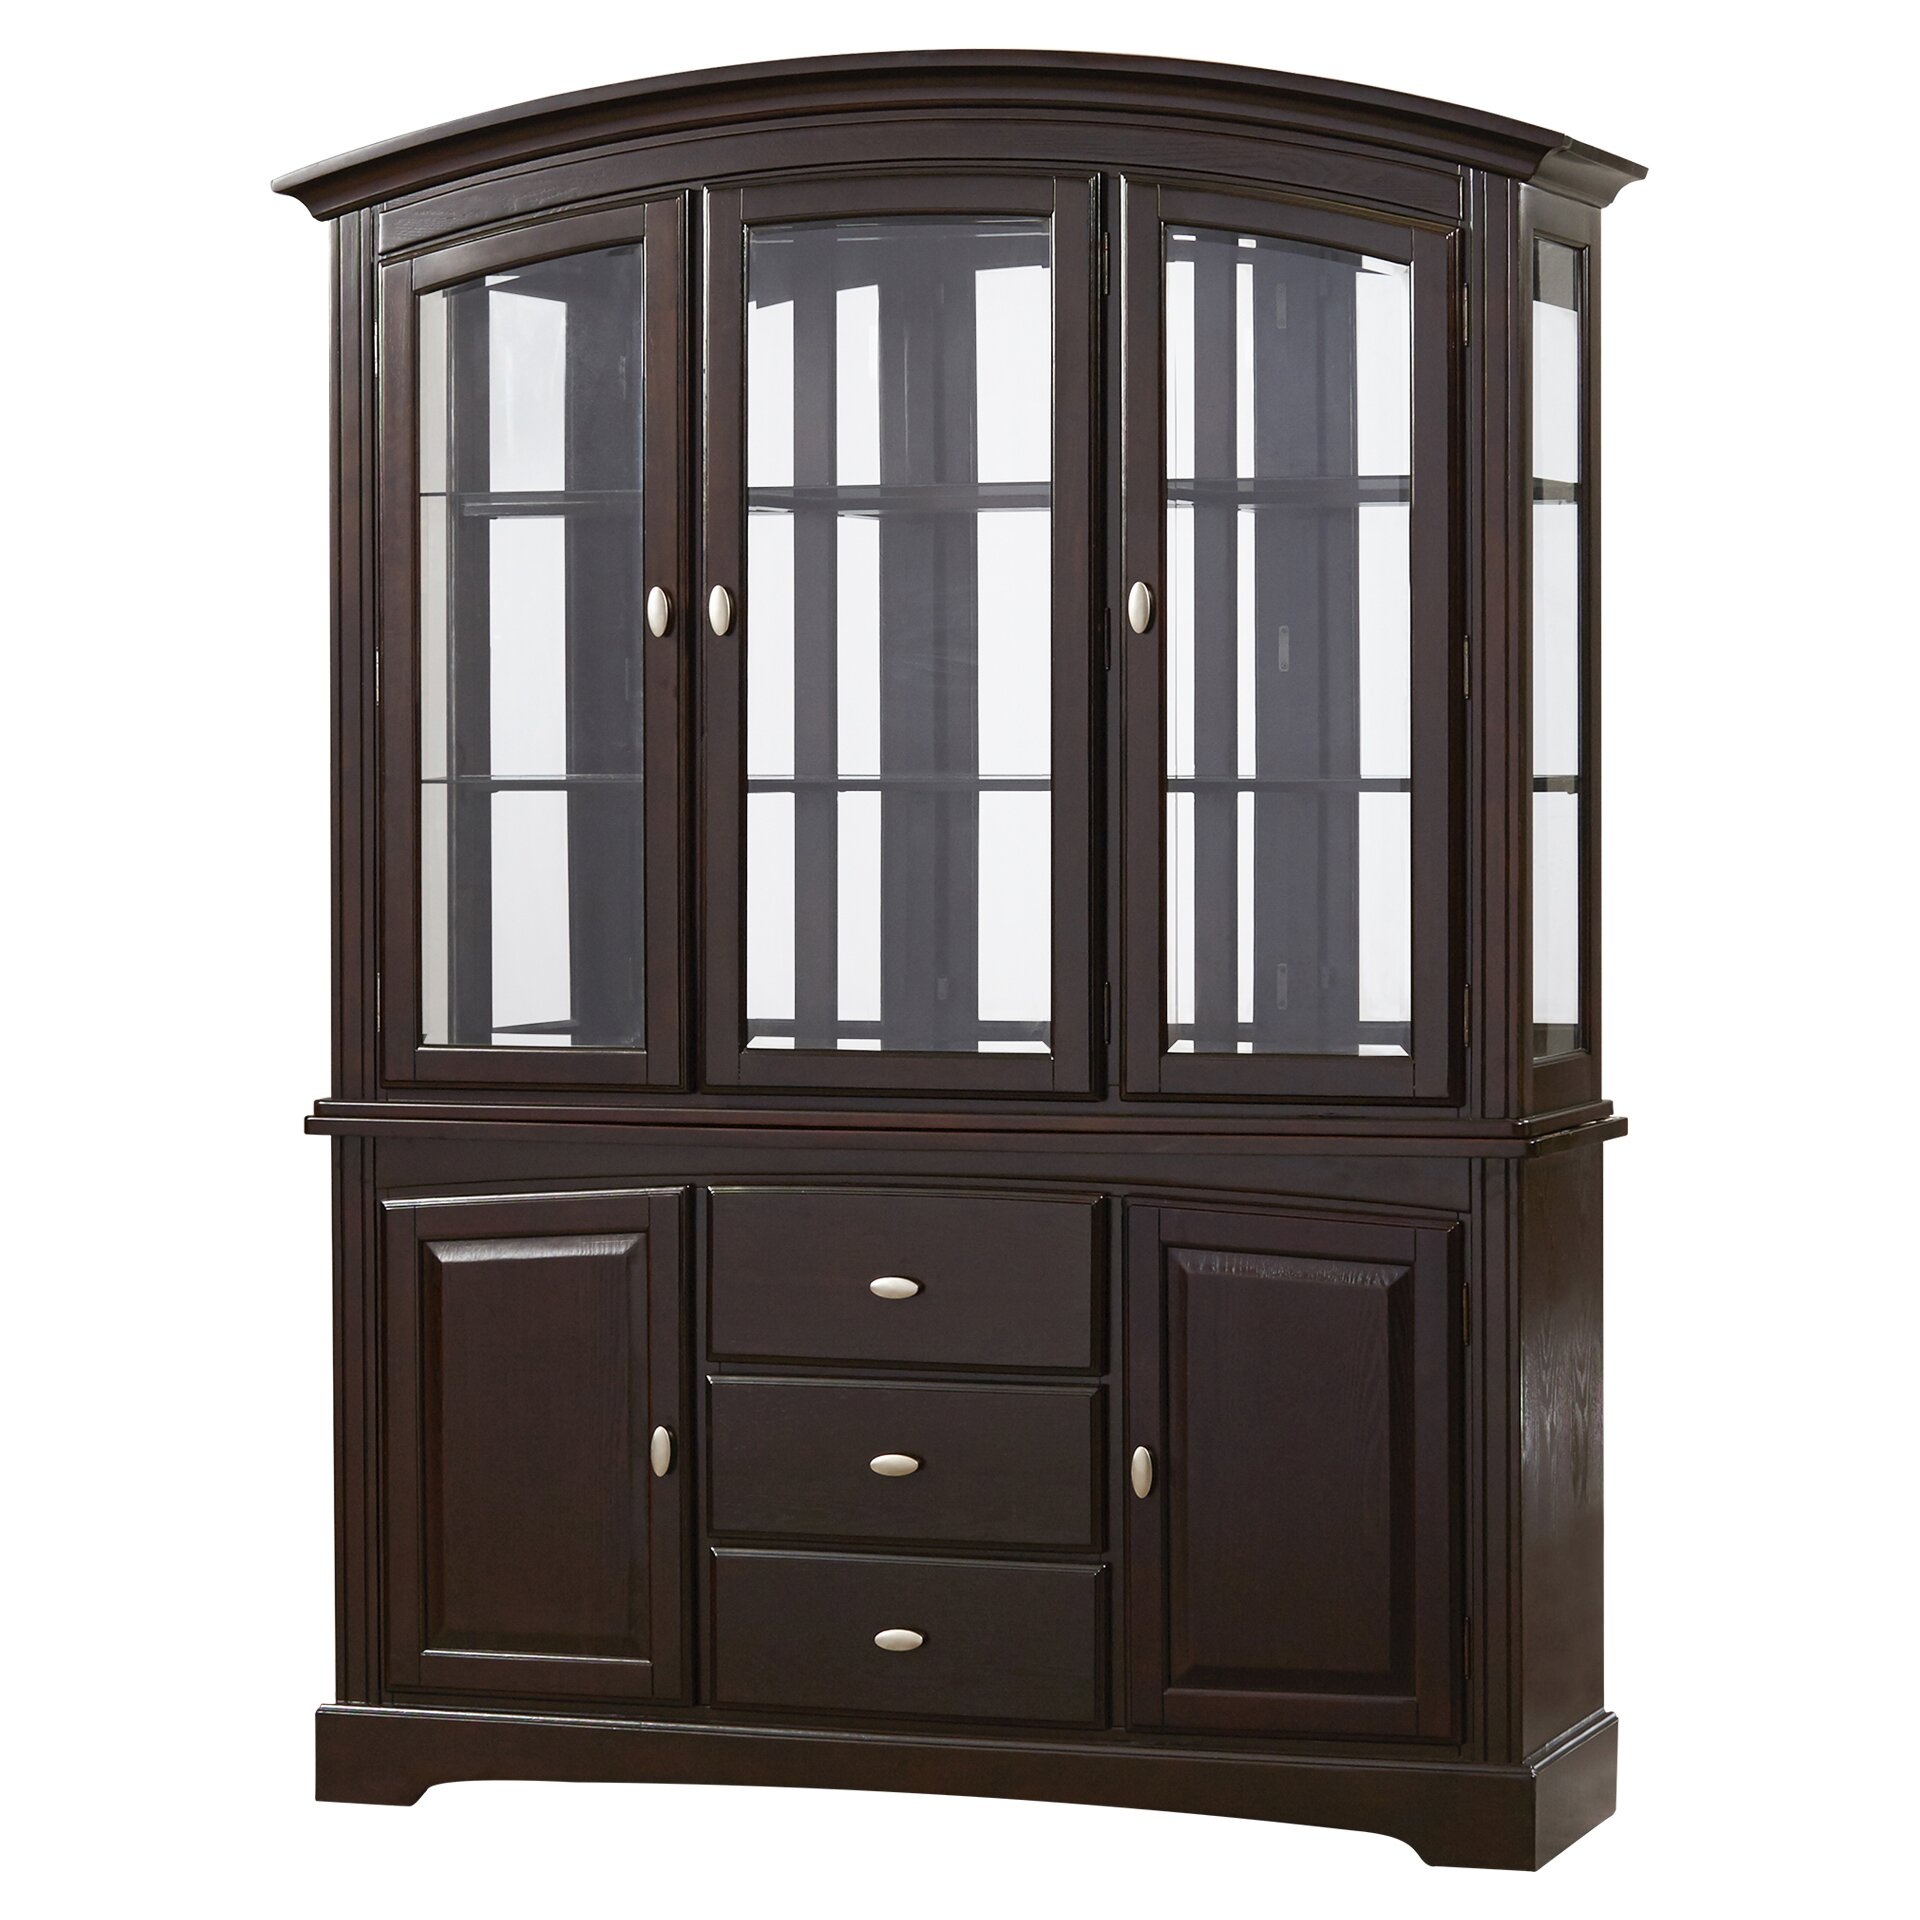 Wayfair Com Sales: Ansari China Cabinet